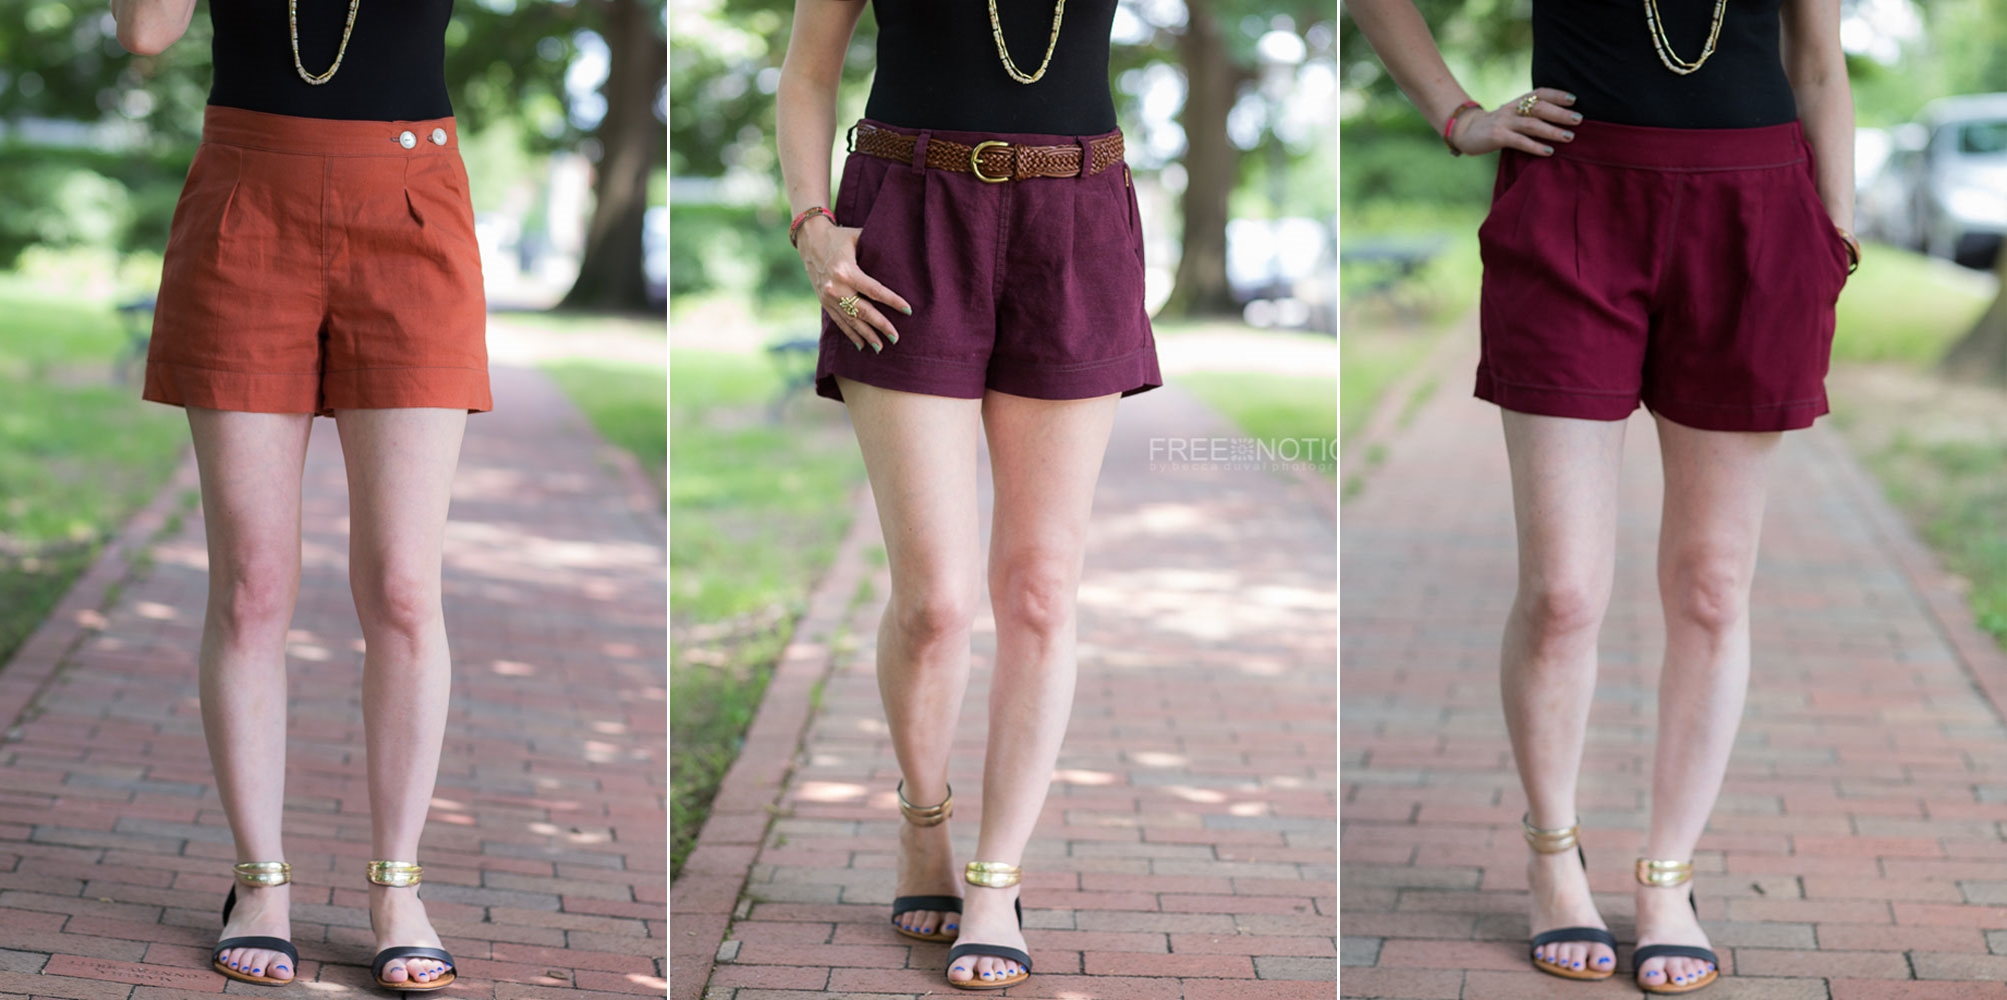 Flint Shorts (Megan Nielsen)  /  Hepburn Shorts (Pattern Emporium)  /  Emerson Shorts (True Bias)